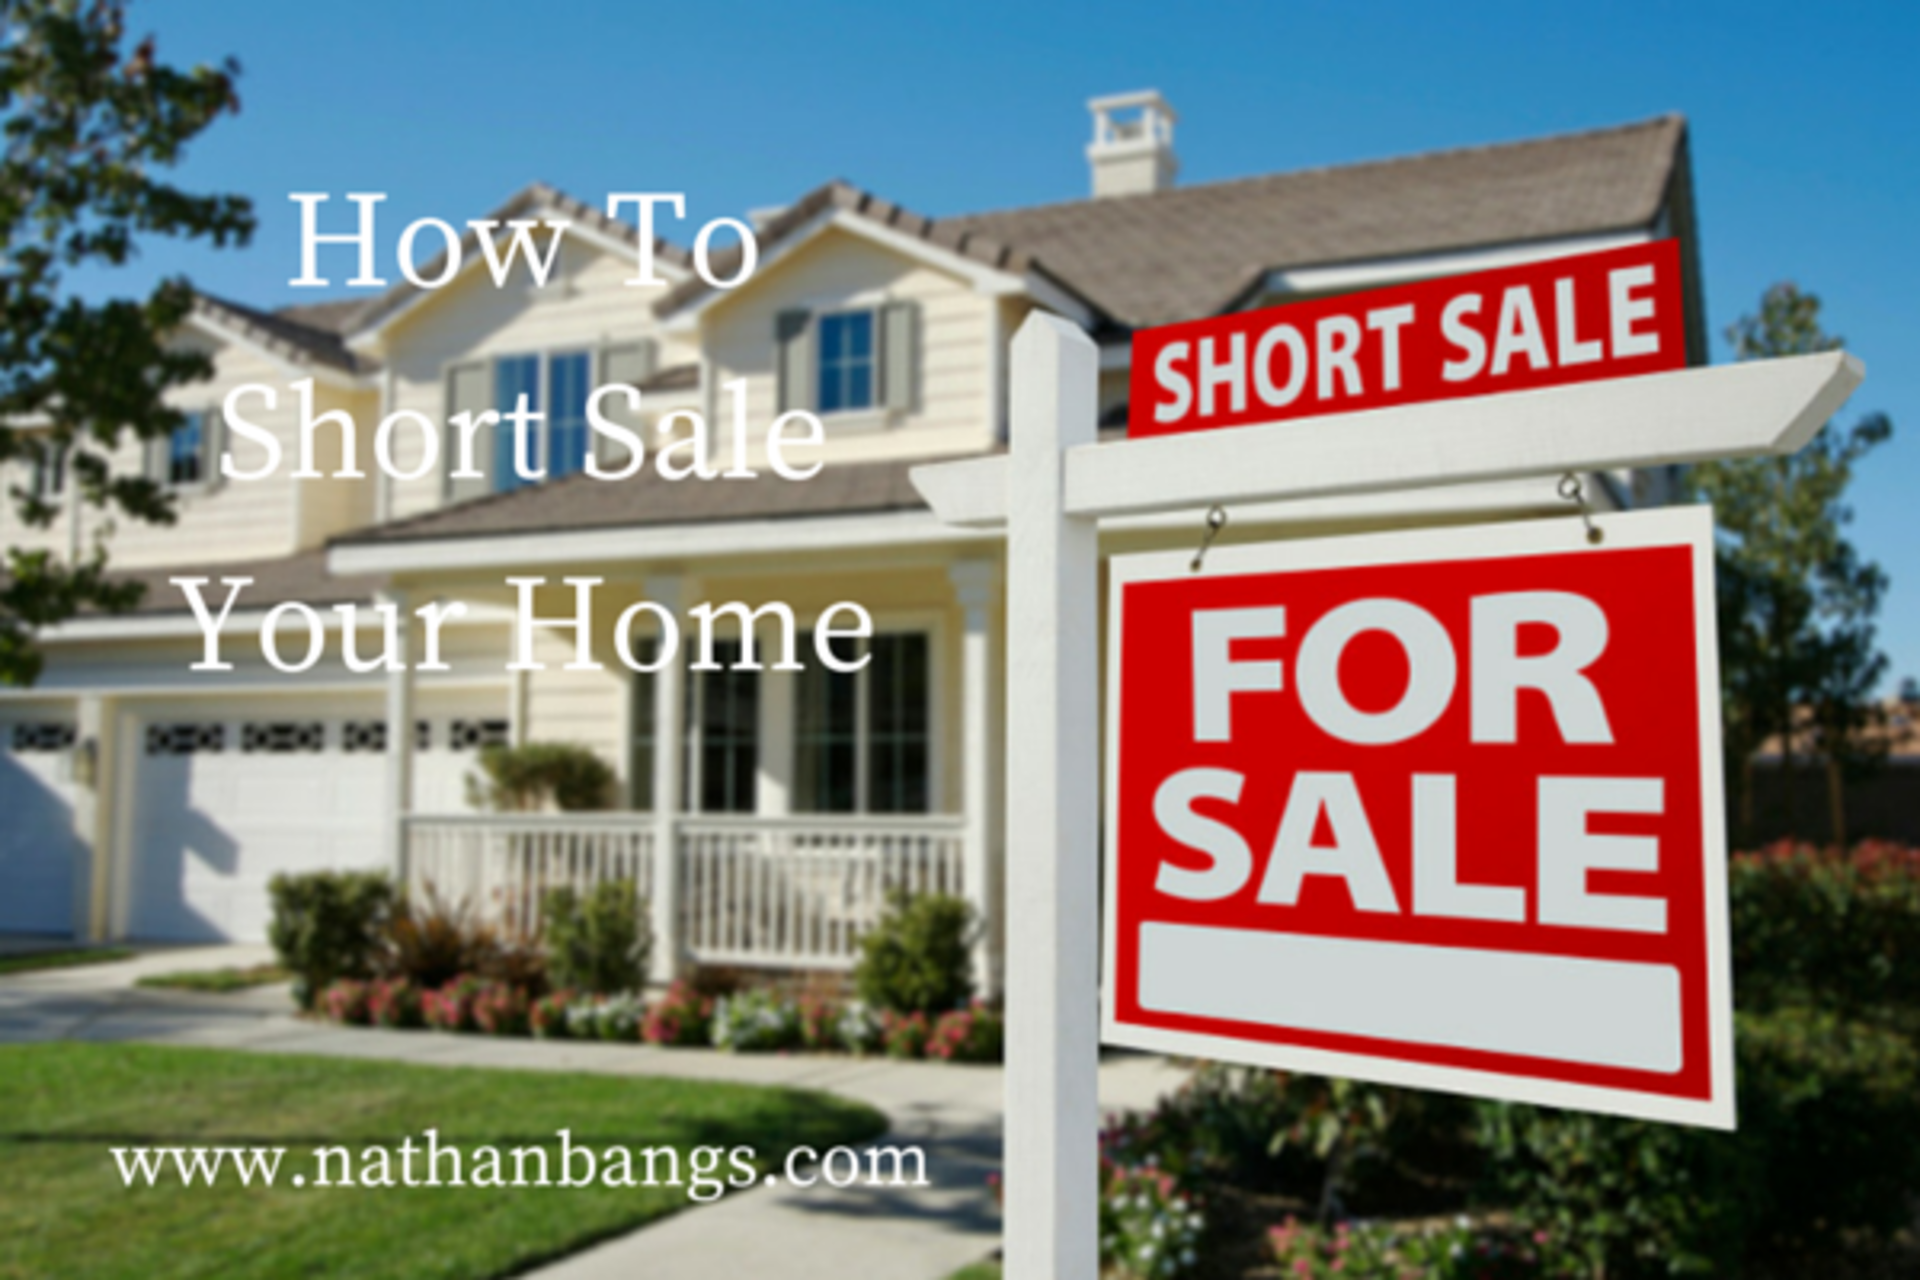 How To Short Sale Your Home